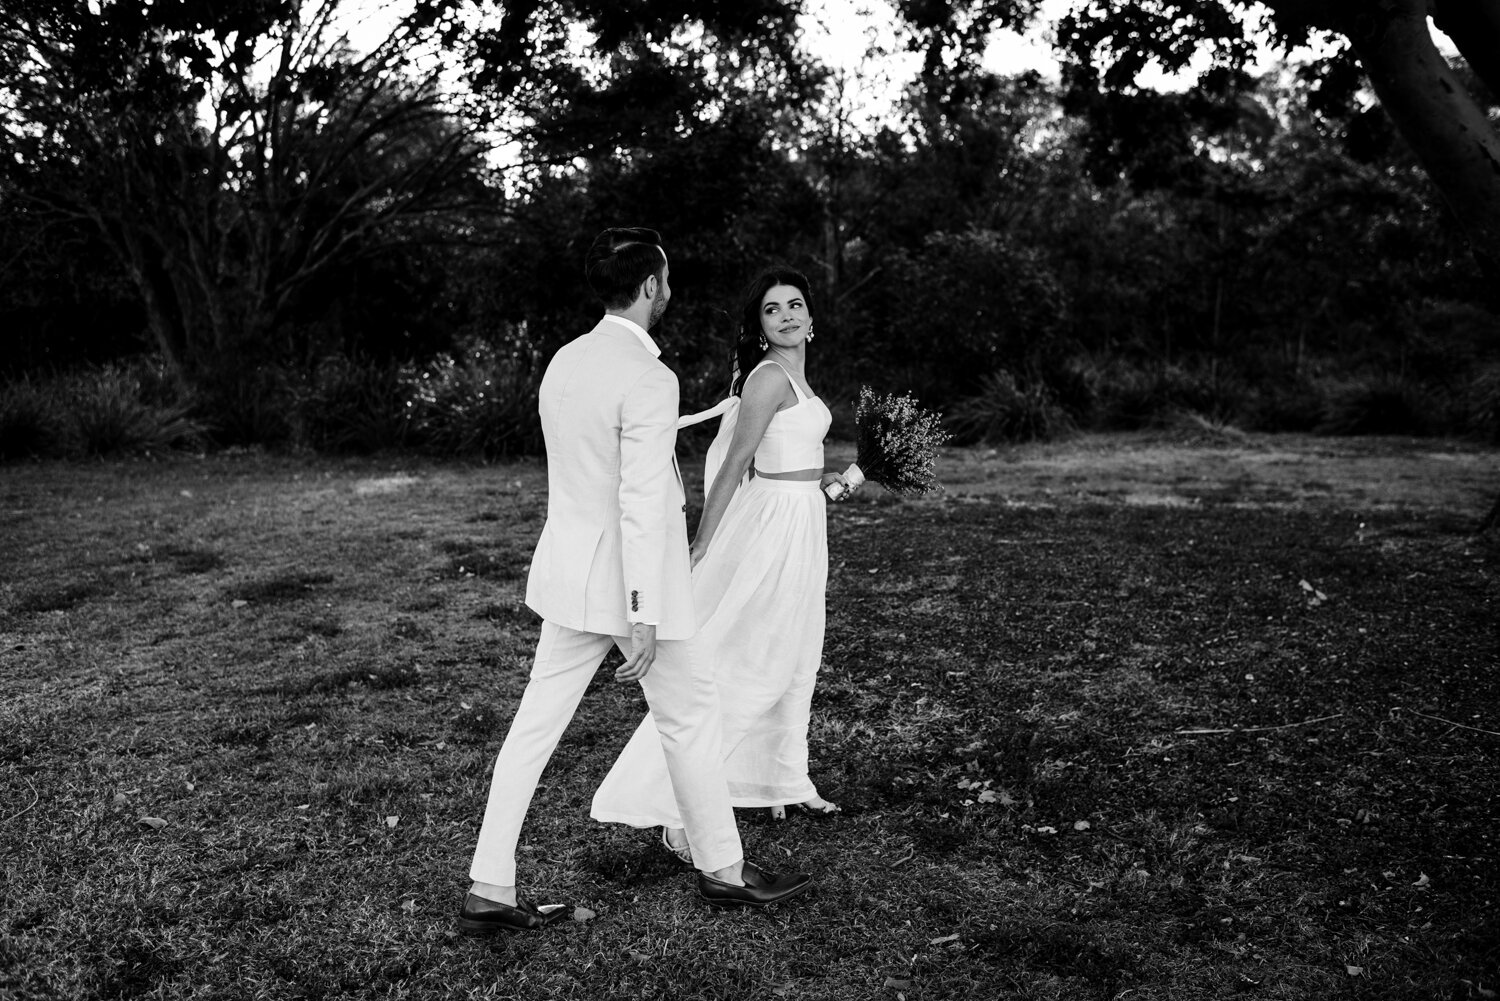 Brisbane Wedding Photographer | Engagement-Elopement Photography-57.jpg